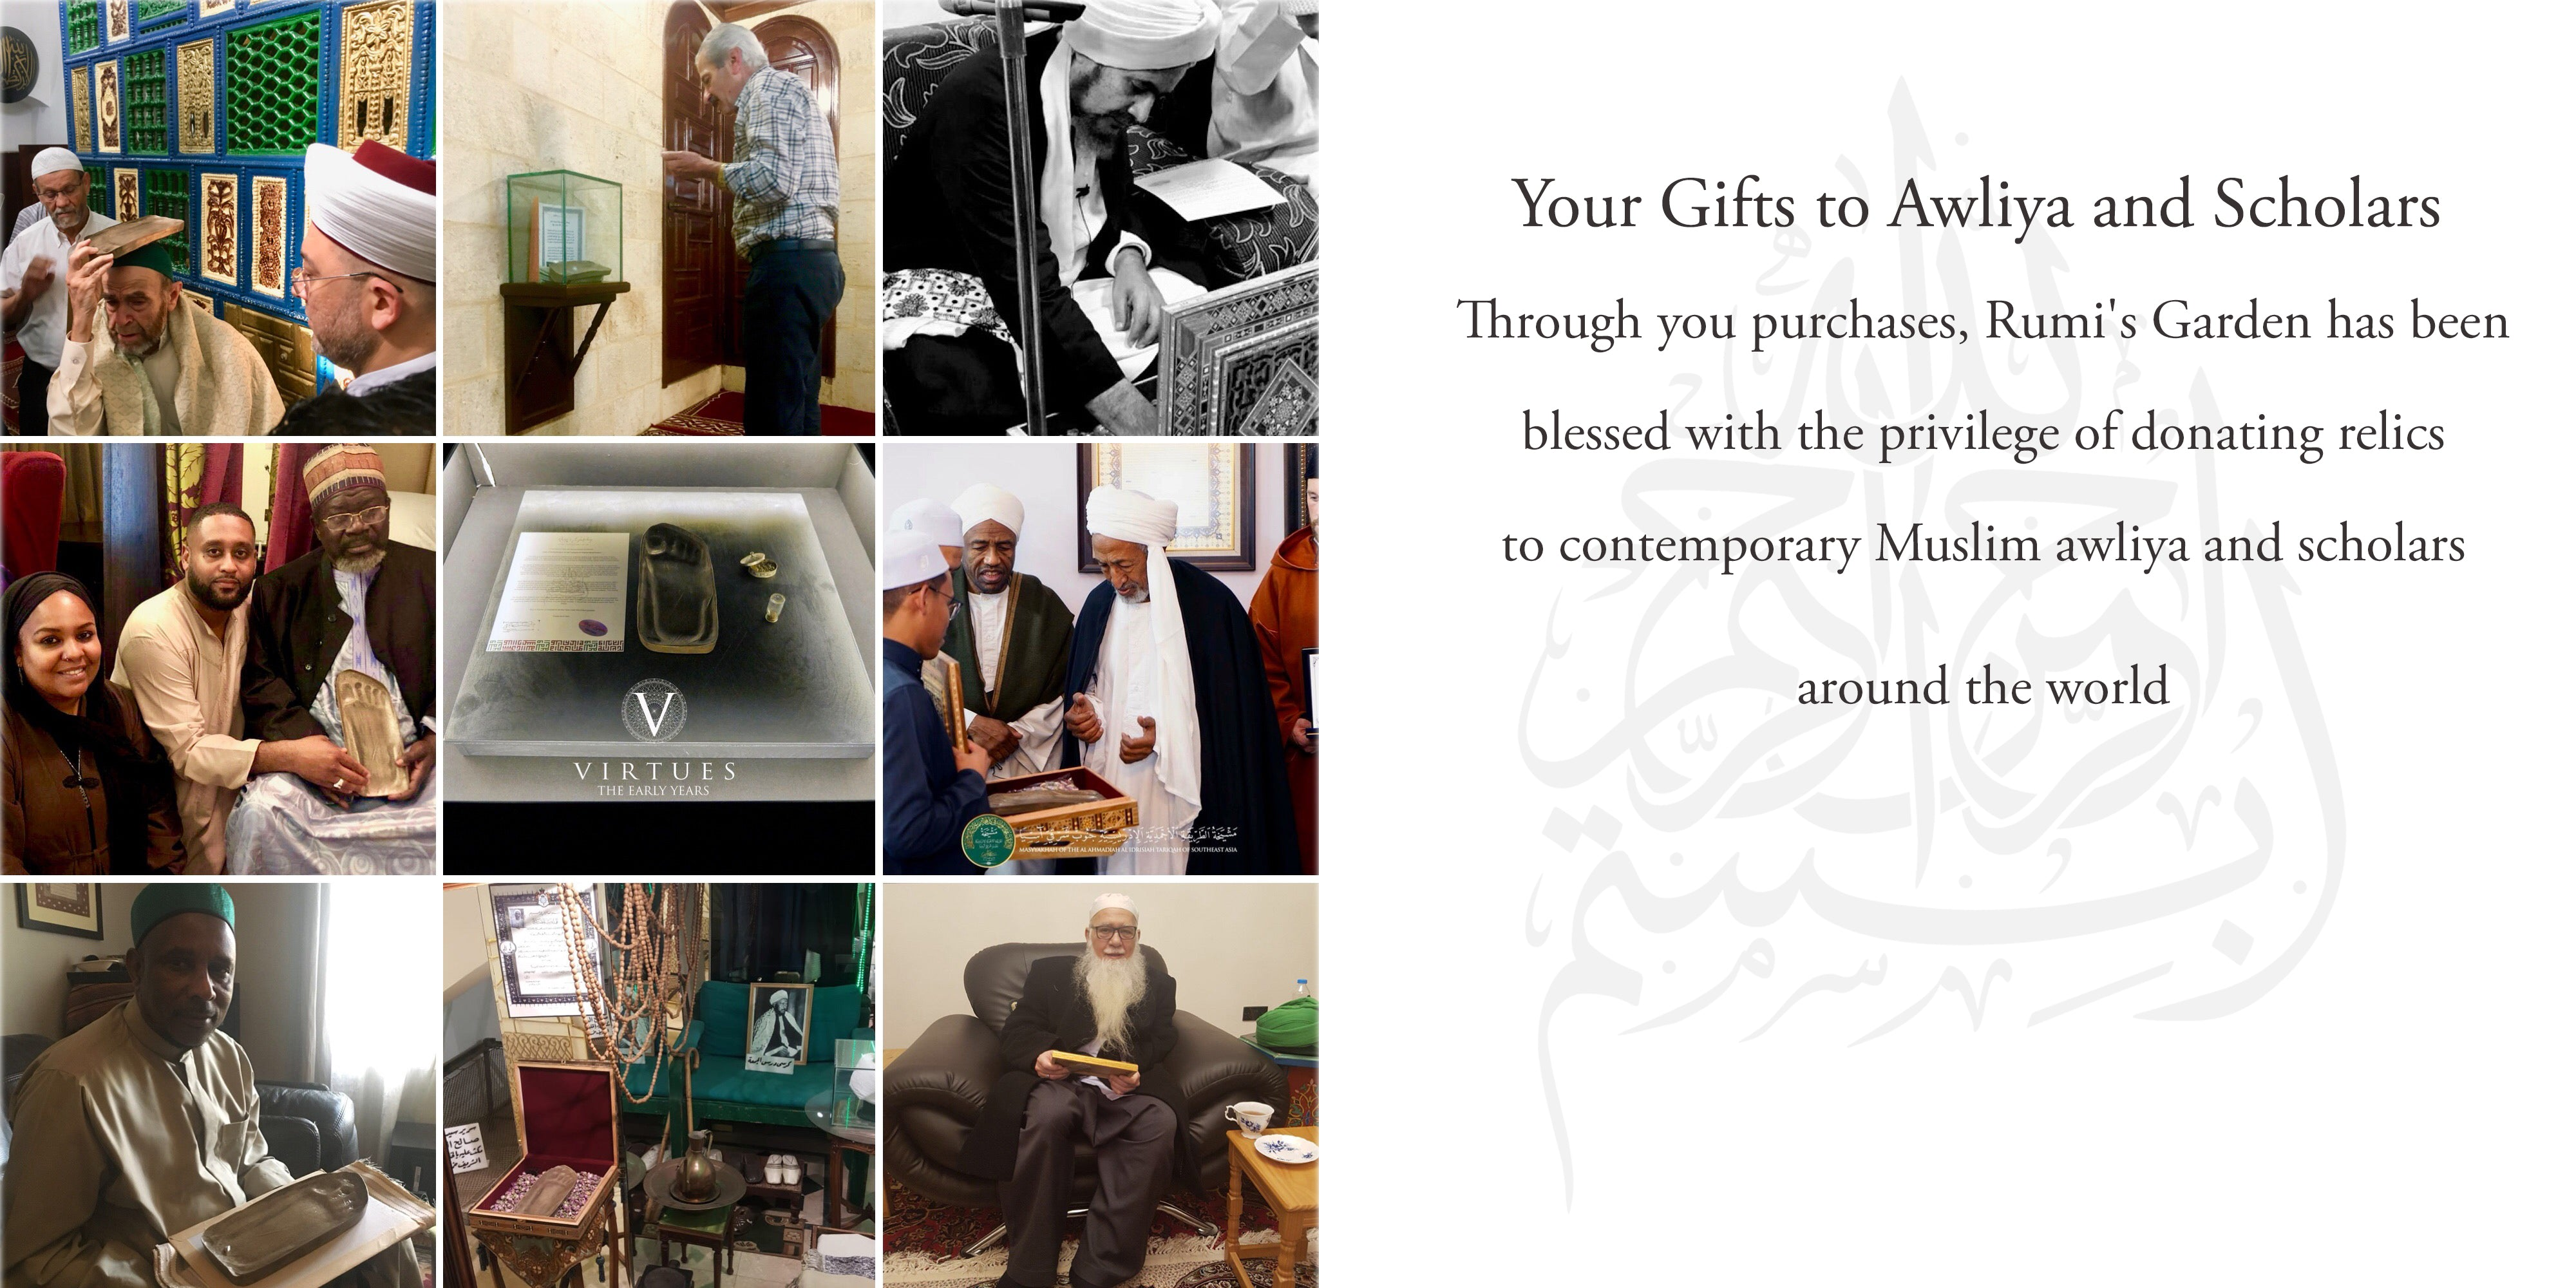 Your Gifts to Awliya and Scholars